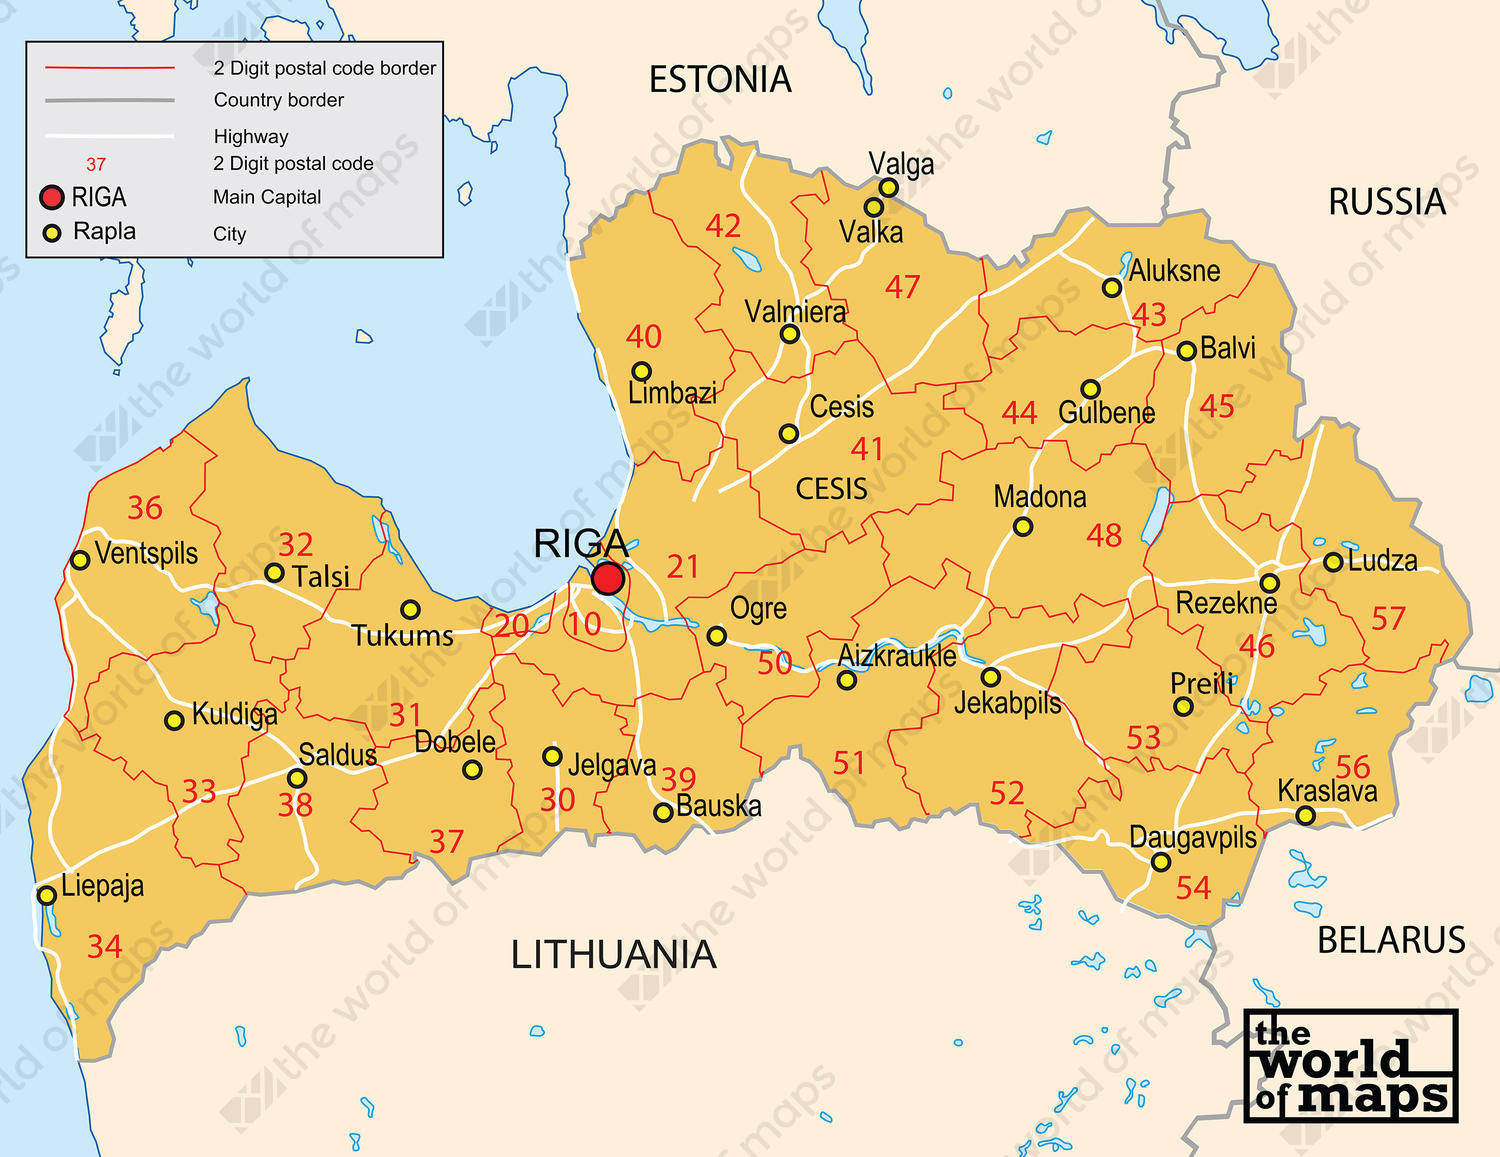 Digital postcode map Latvia 2digit 87 The World of Mapscom